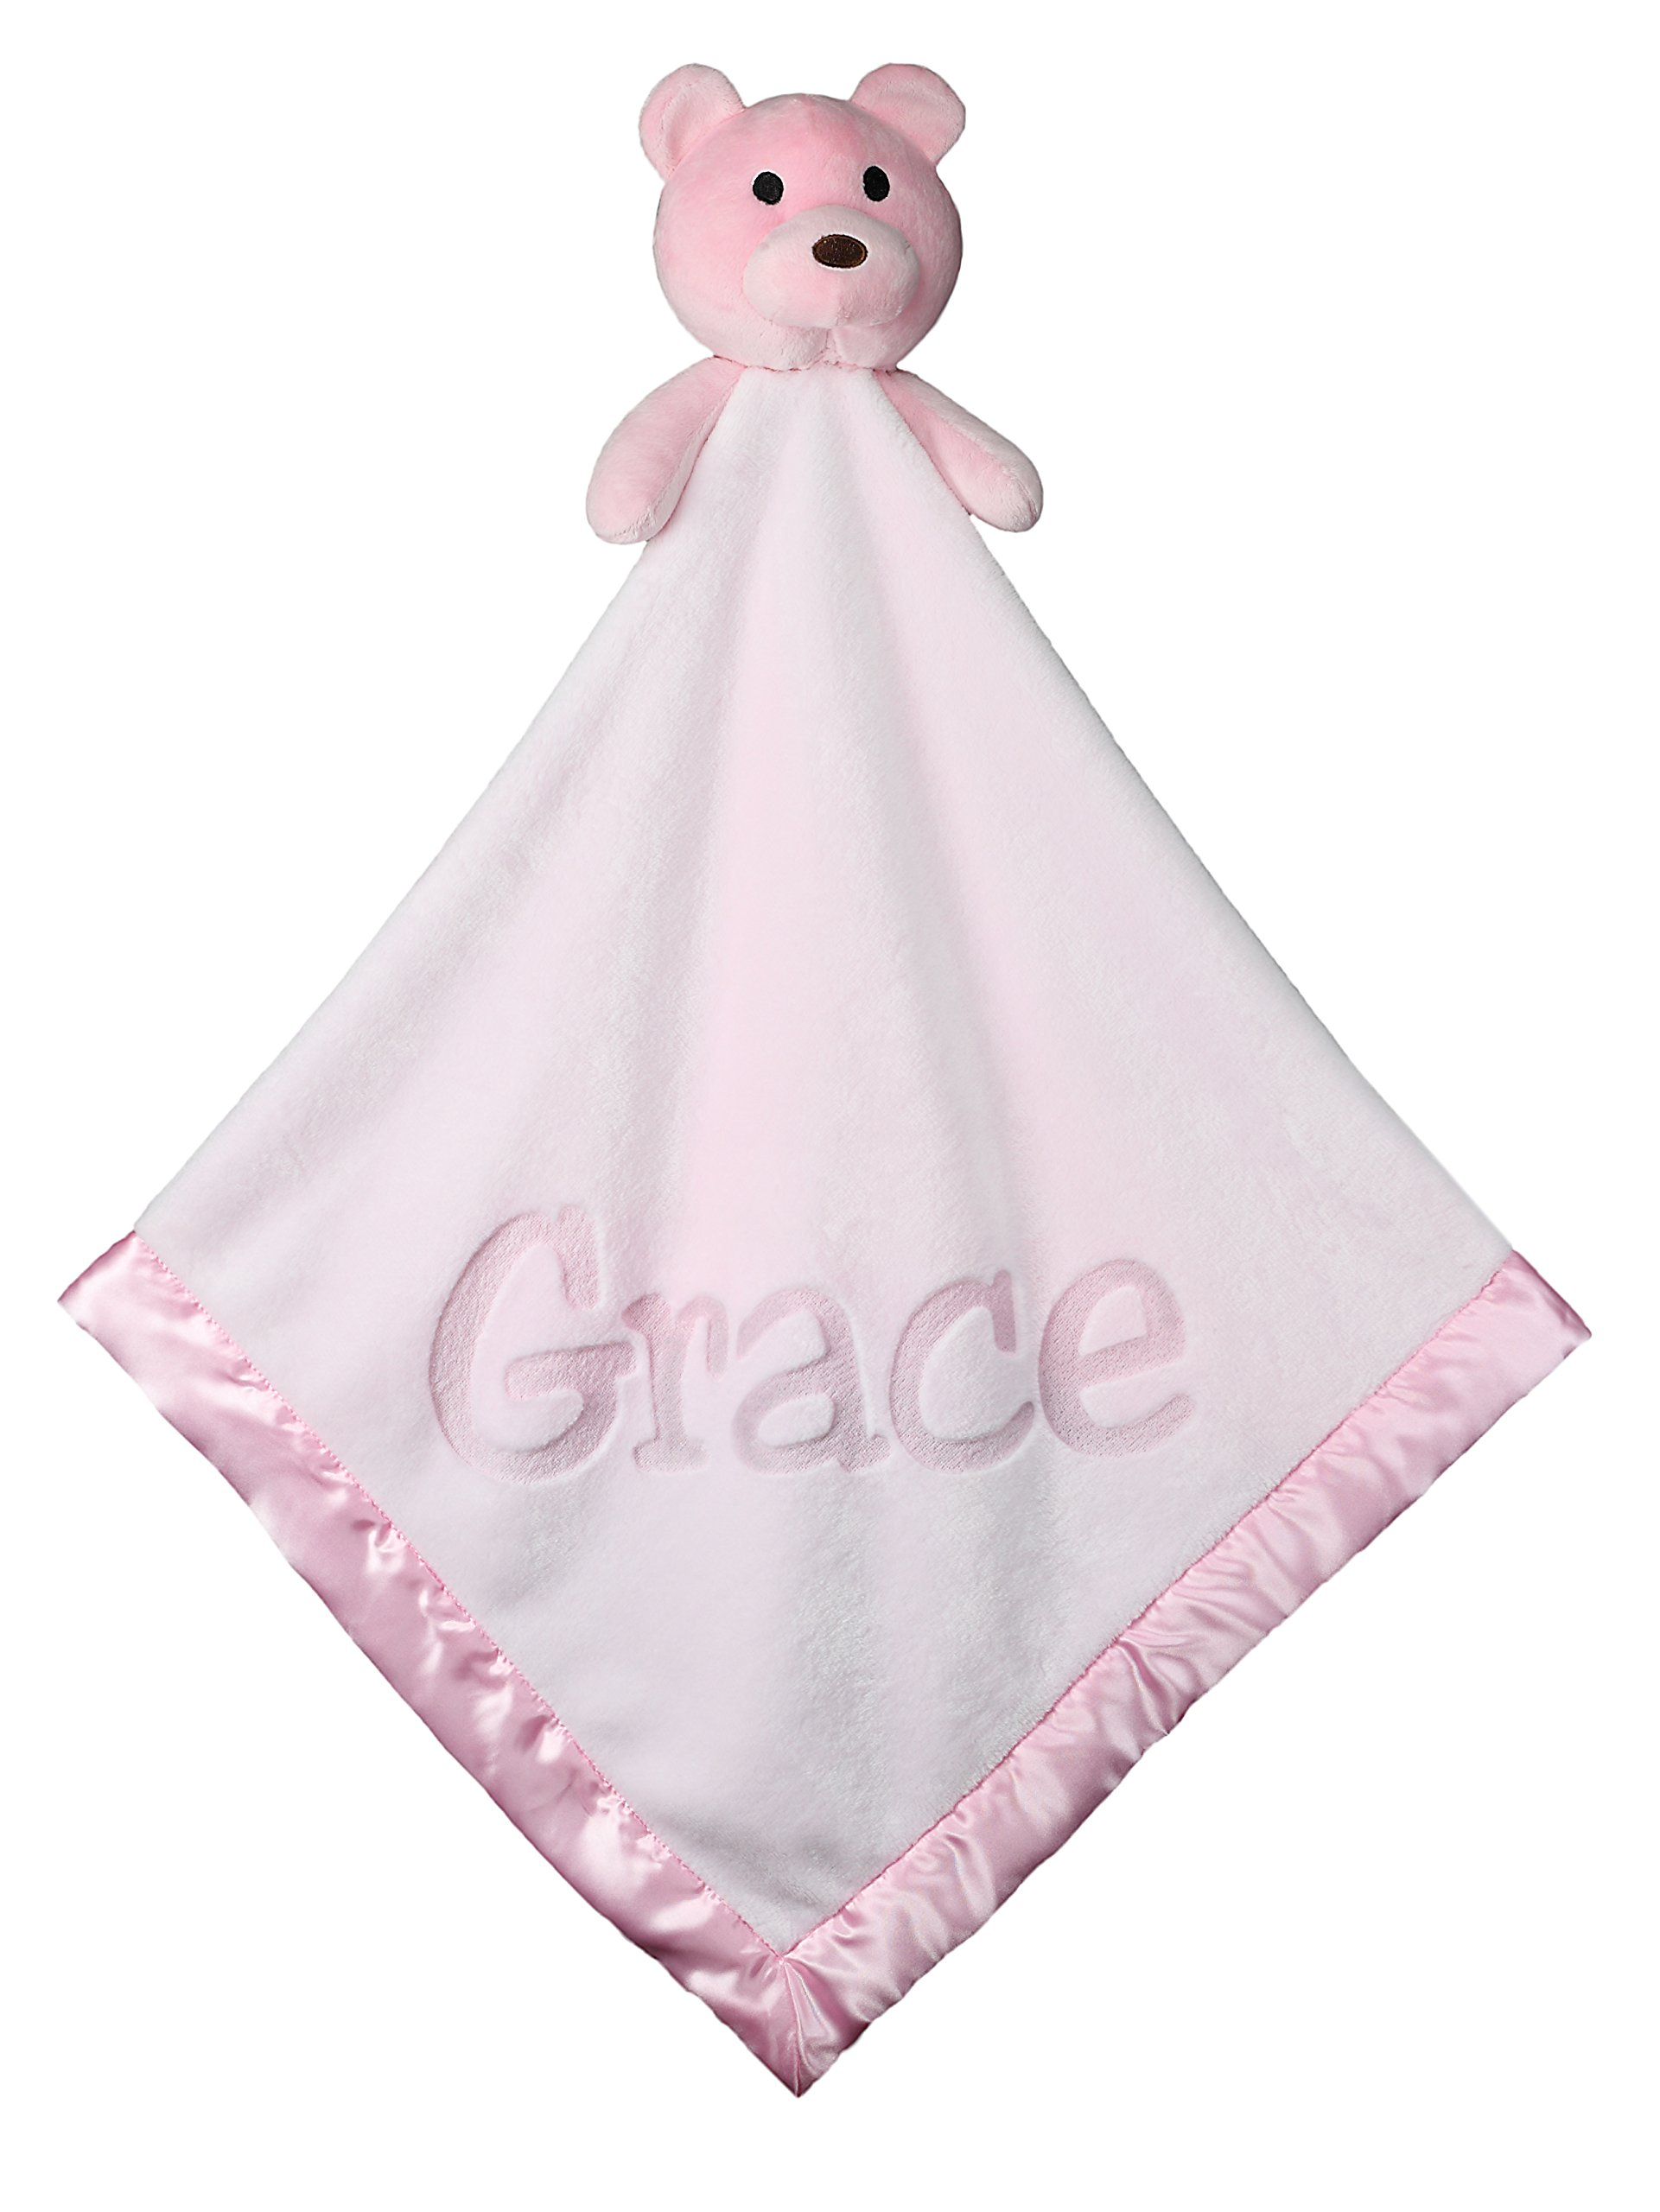 Large Ultra Plush Personalized Teddy Bear Baby Blanket Gifts, 40x40 Inch (Pink), Boy or Girl